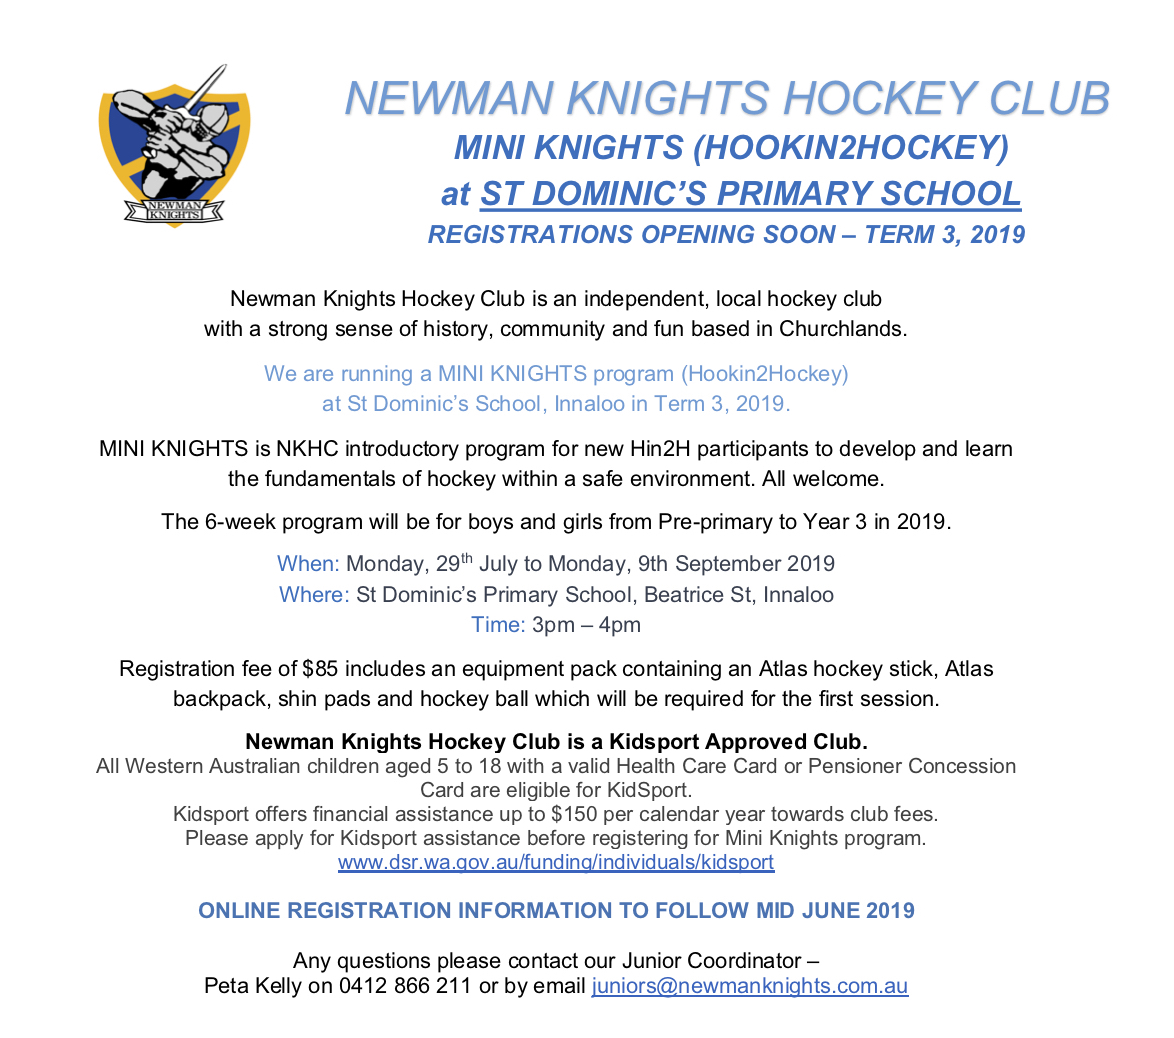 PP to Year 3 Mini Knights Hockey Program Coming to St Dom's in Term 3!